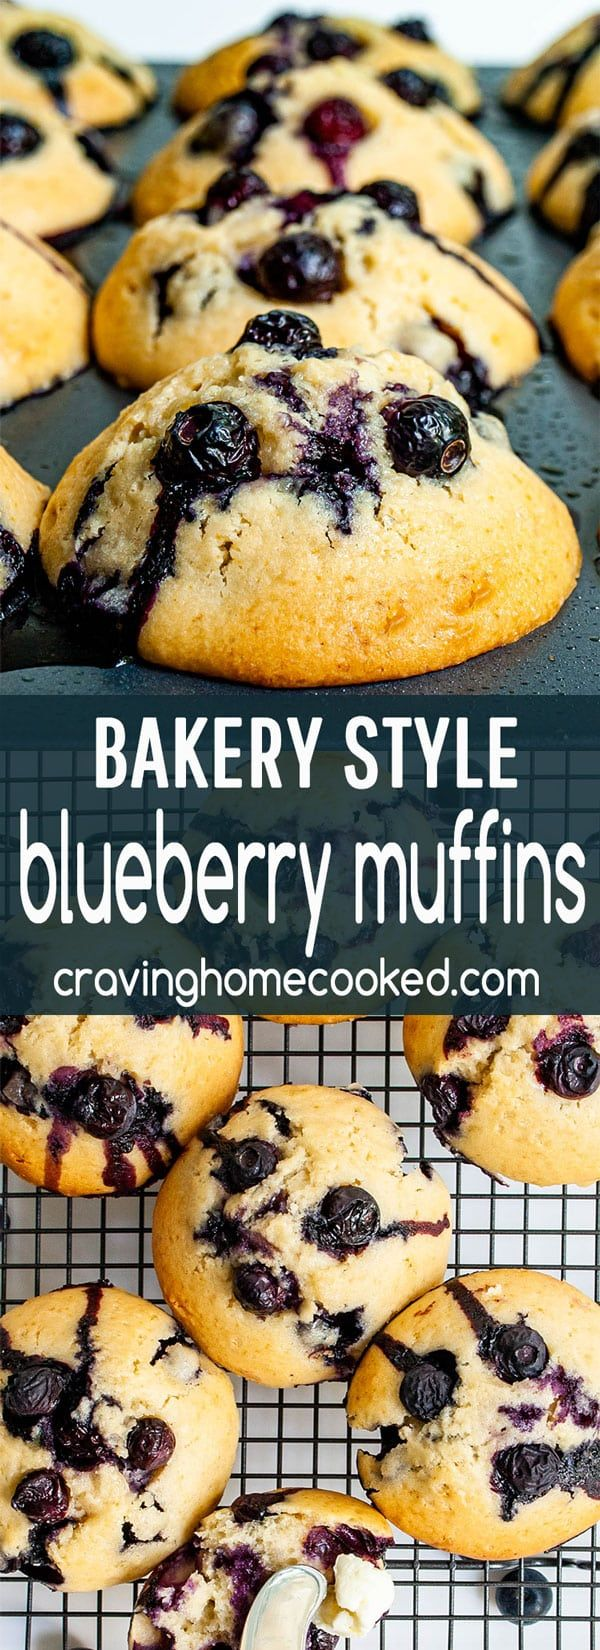 Bakery Style Blueberry Muffins - Craving Home Cooked